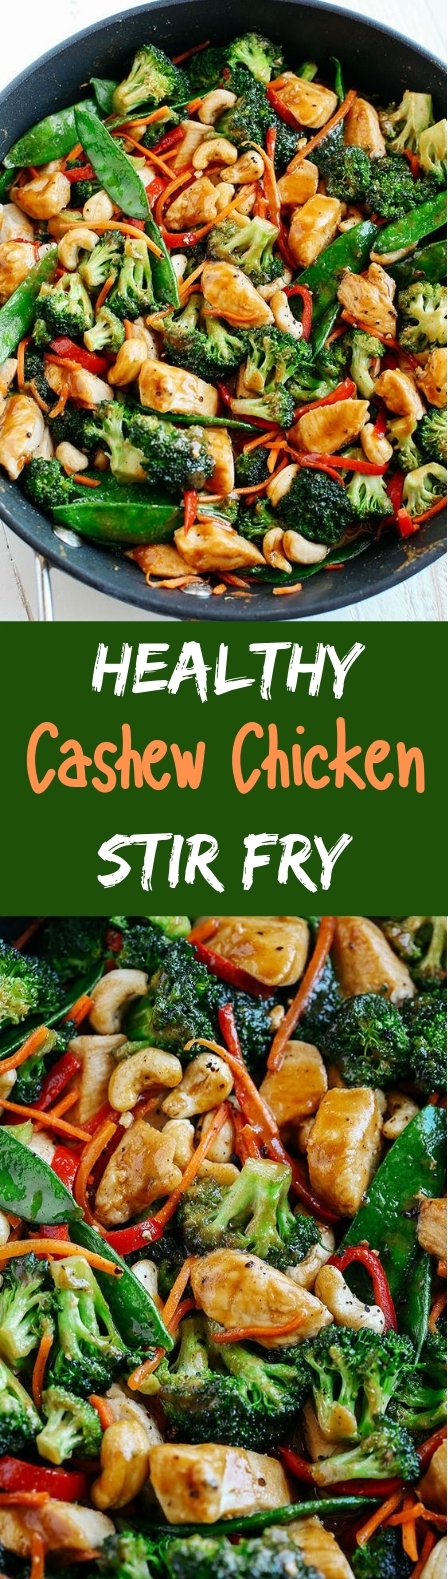 One Skillet Cashew Chicken Stir Fry #healthy #lowcarb